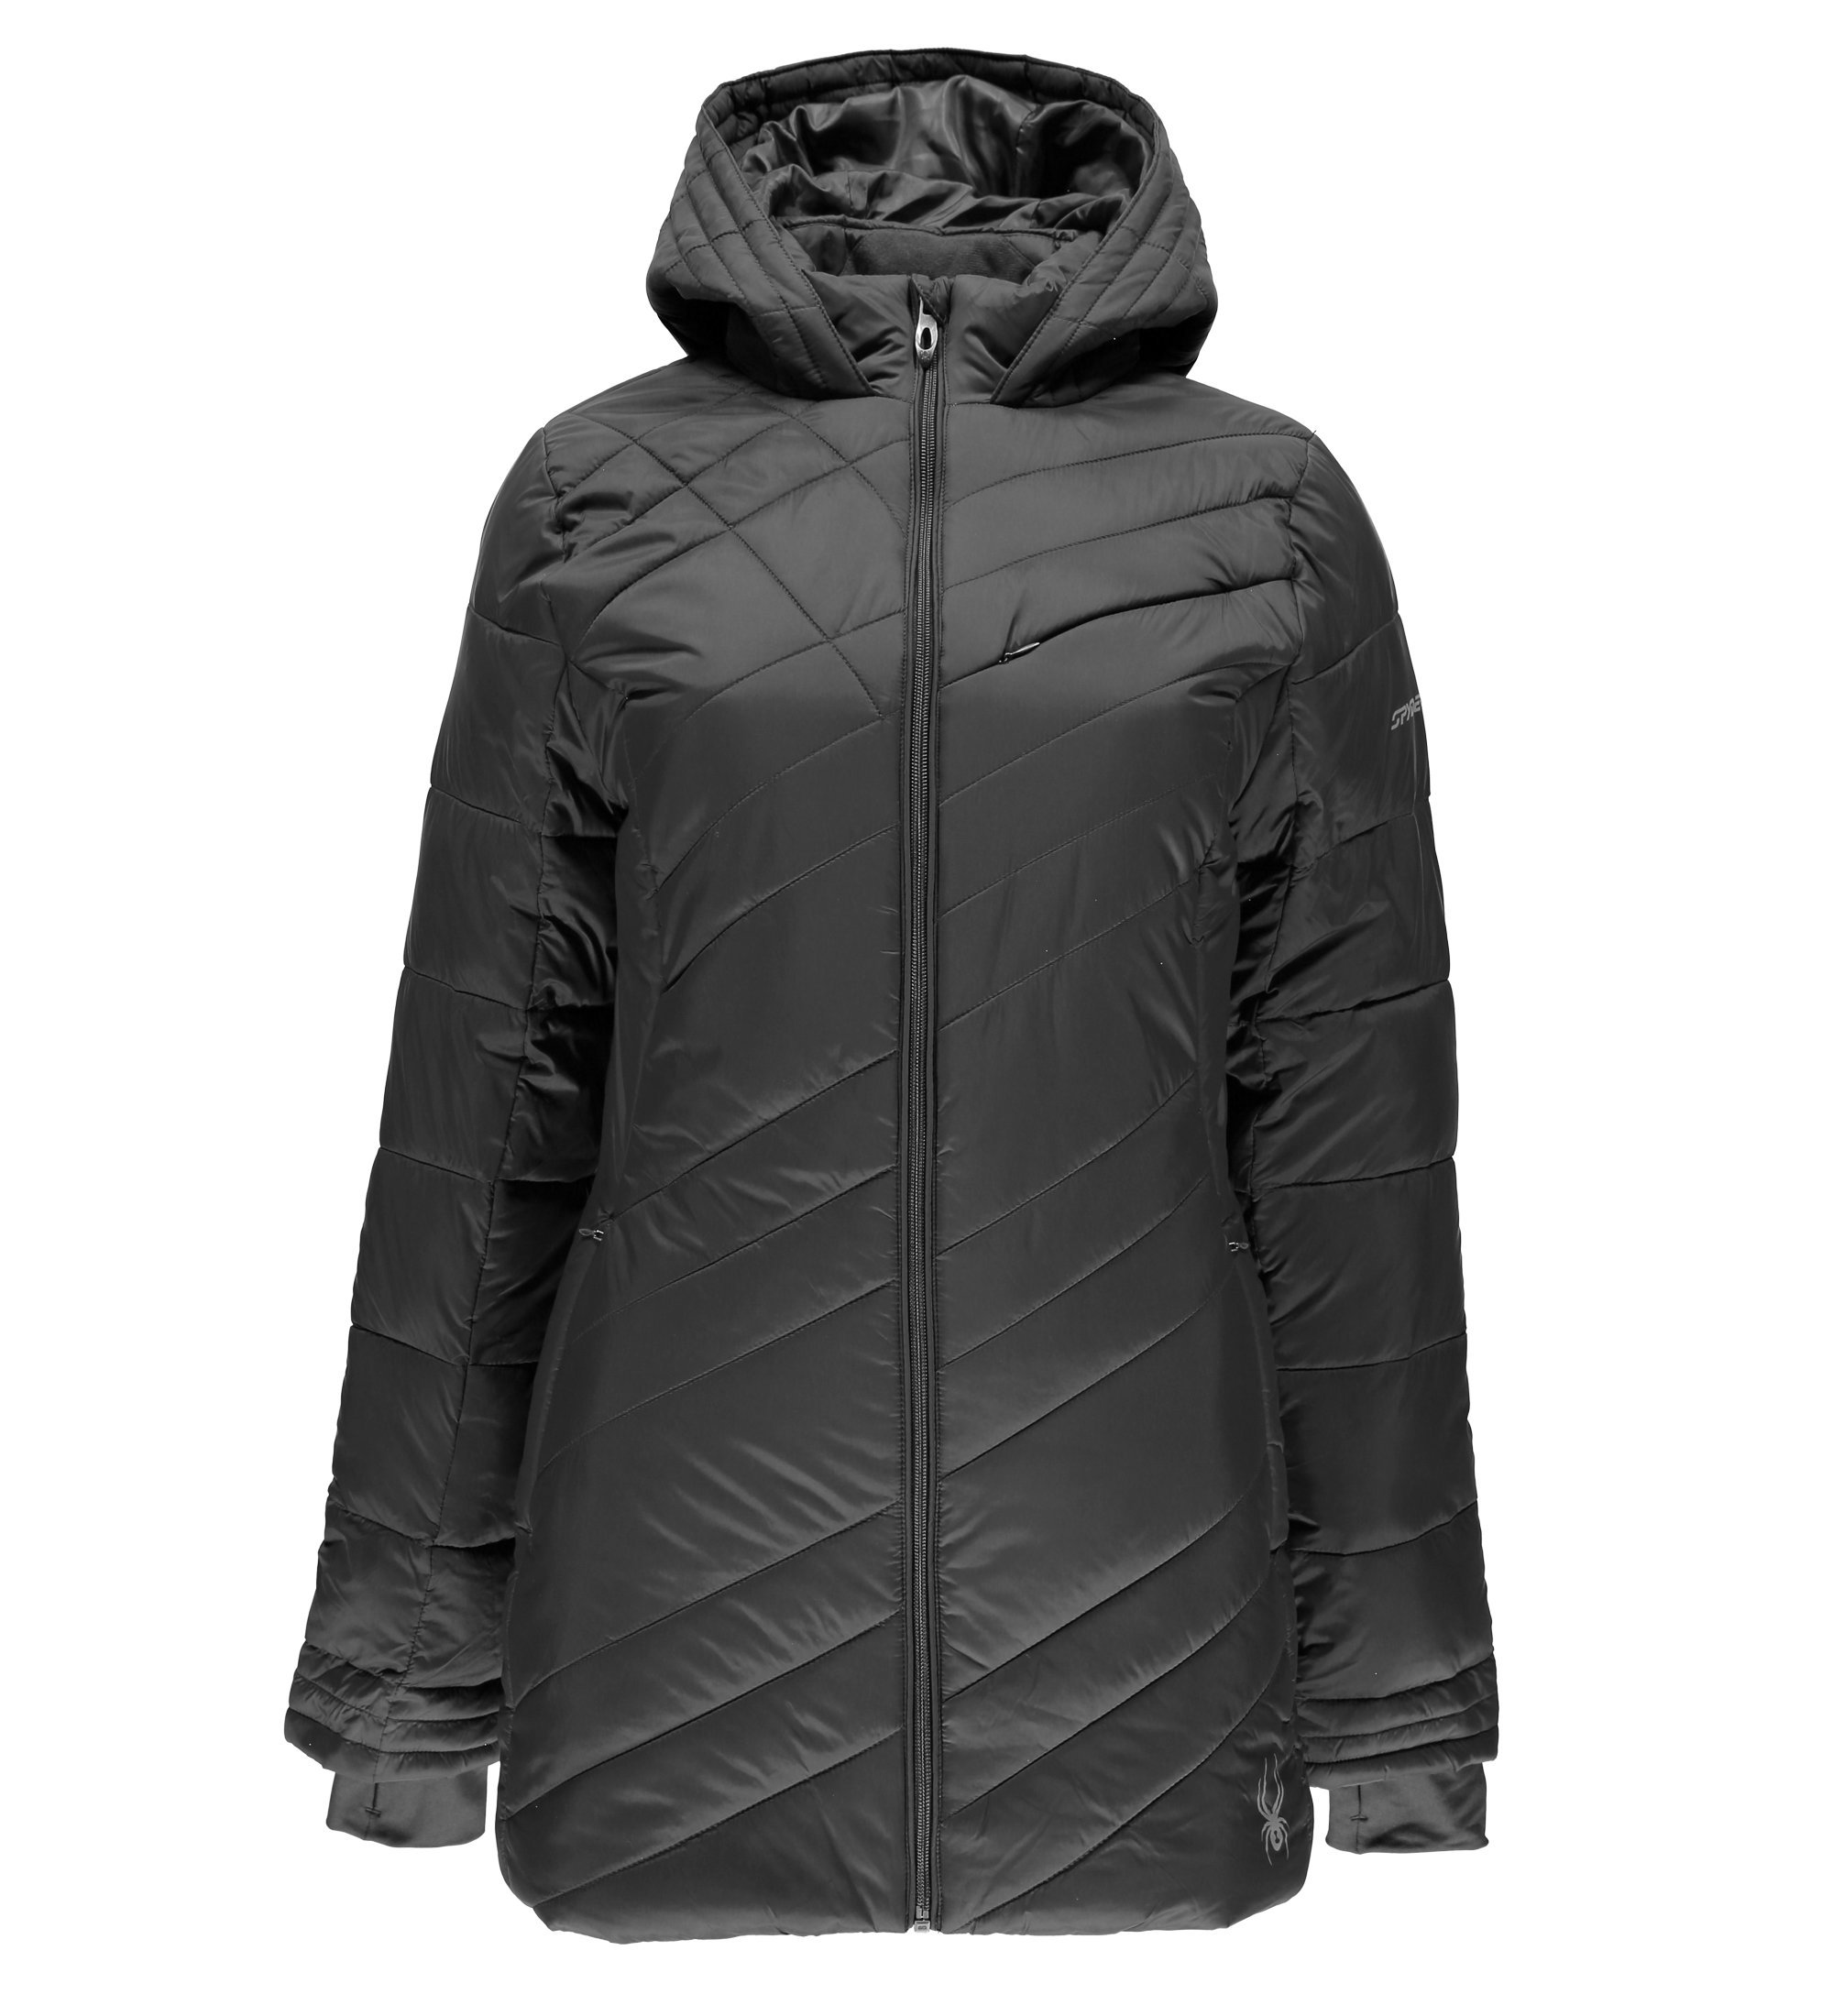 Spyder Women's Siren Long Jacket, Weld, Small by Spyder